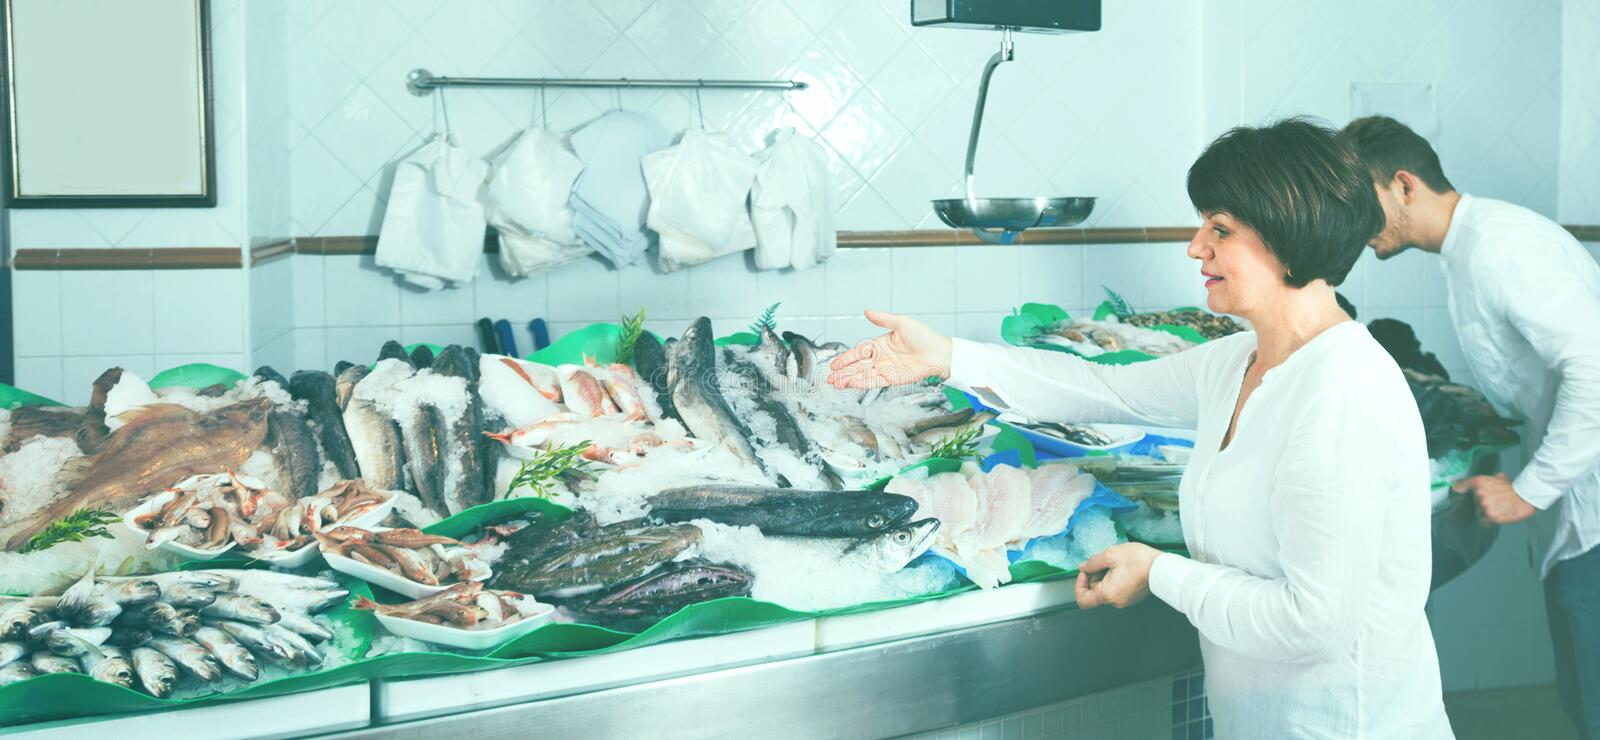 Download Mature Woman Selecting Cooled Fish At Fishery Stock Photo - Image: 83701983